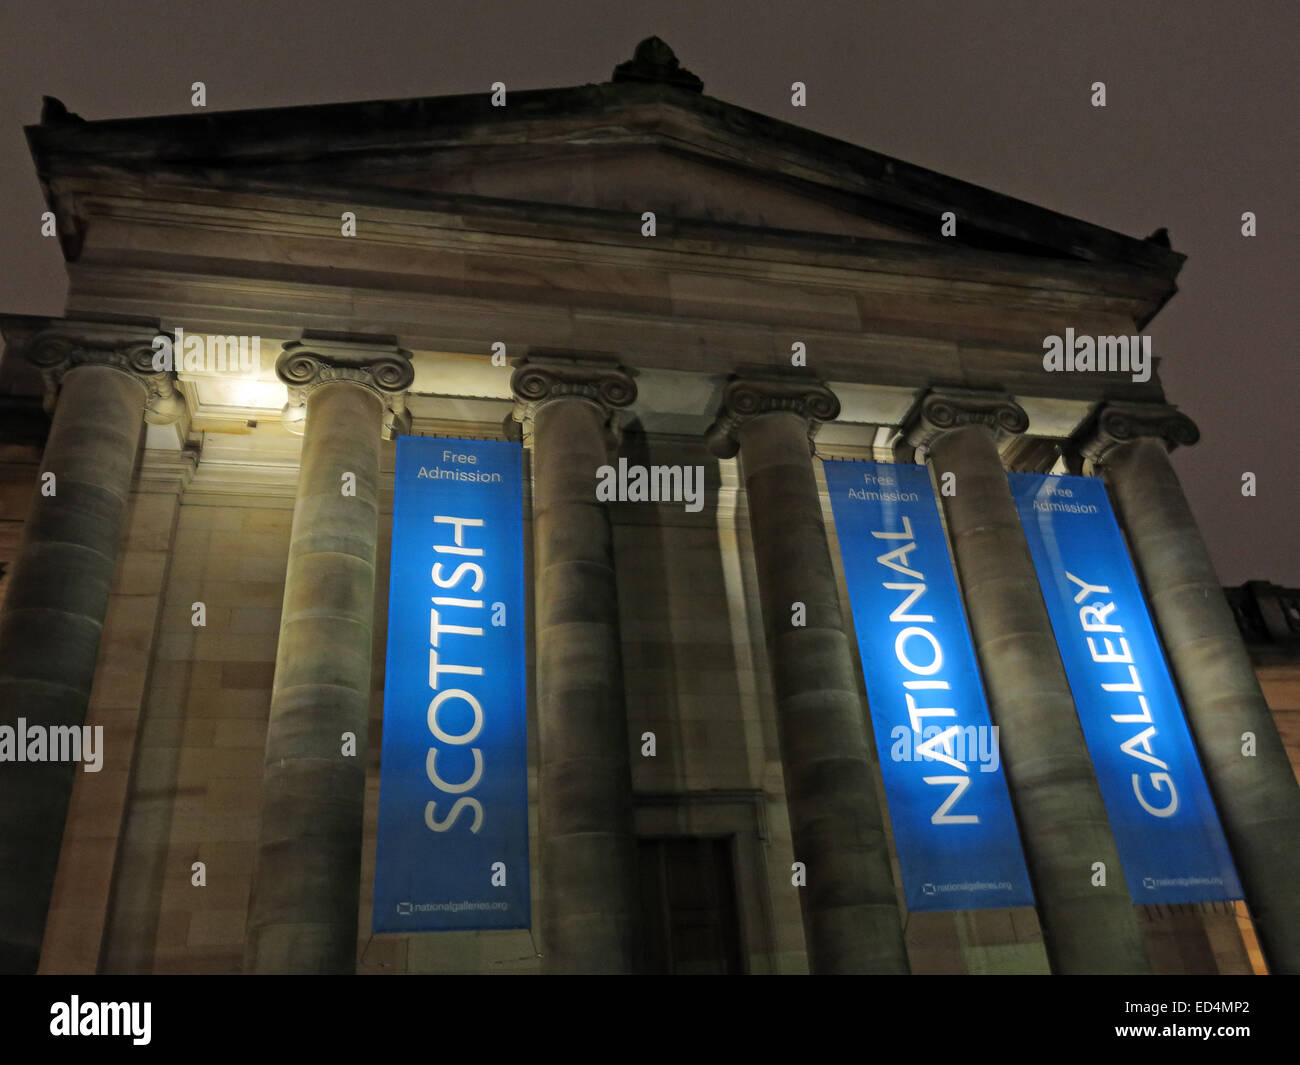 street,stone doric columns gothic greek style building Edinburgh,Scotland,UK,Scots,tourist,tourism,attraction,dusk,in,the,evening,located,on,The,Mound,in,central,neoclassical,building,designed,by,William,Henry,Playfair,looking,up,National Gallery,Scottish National gallery,GoTonySmith,Tour,tourist,tourism,tourist,attraction,Scotland,Capital,City,Scots,Scottish,icon,iconic,@Hotpixuk,HotpixUk,Tourist Attraction,city Centre